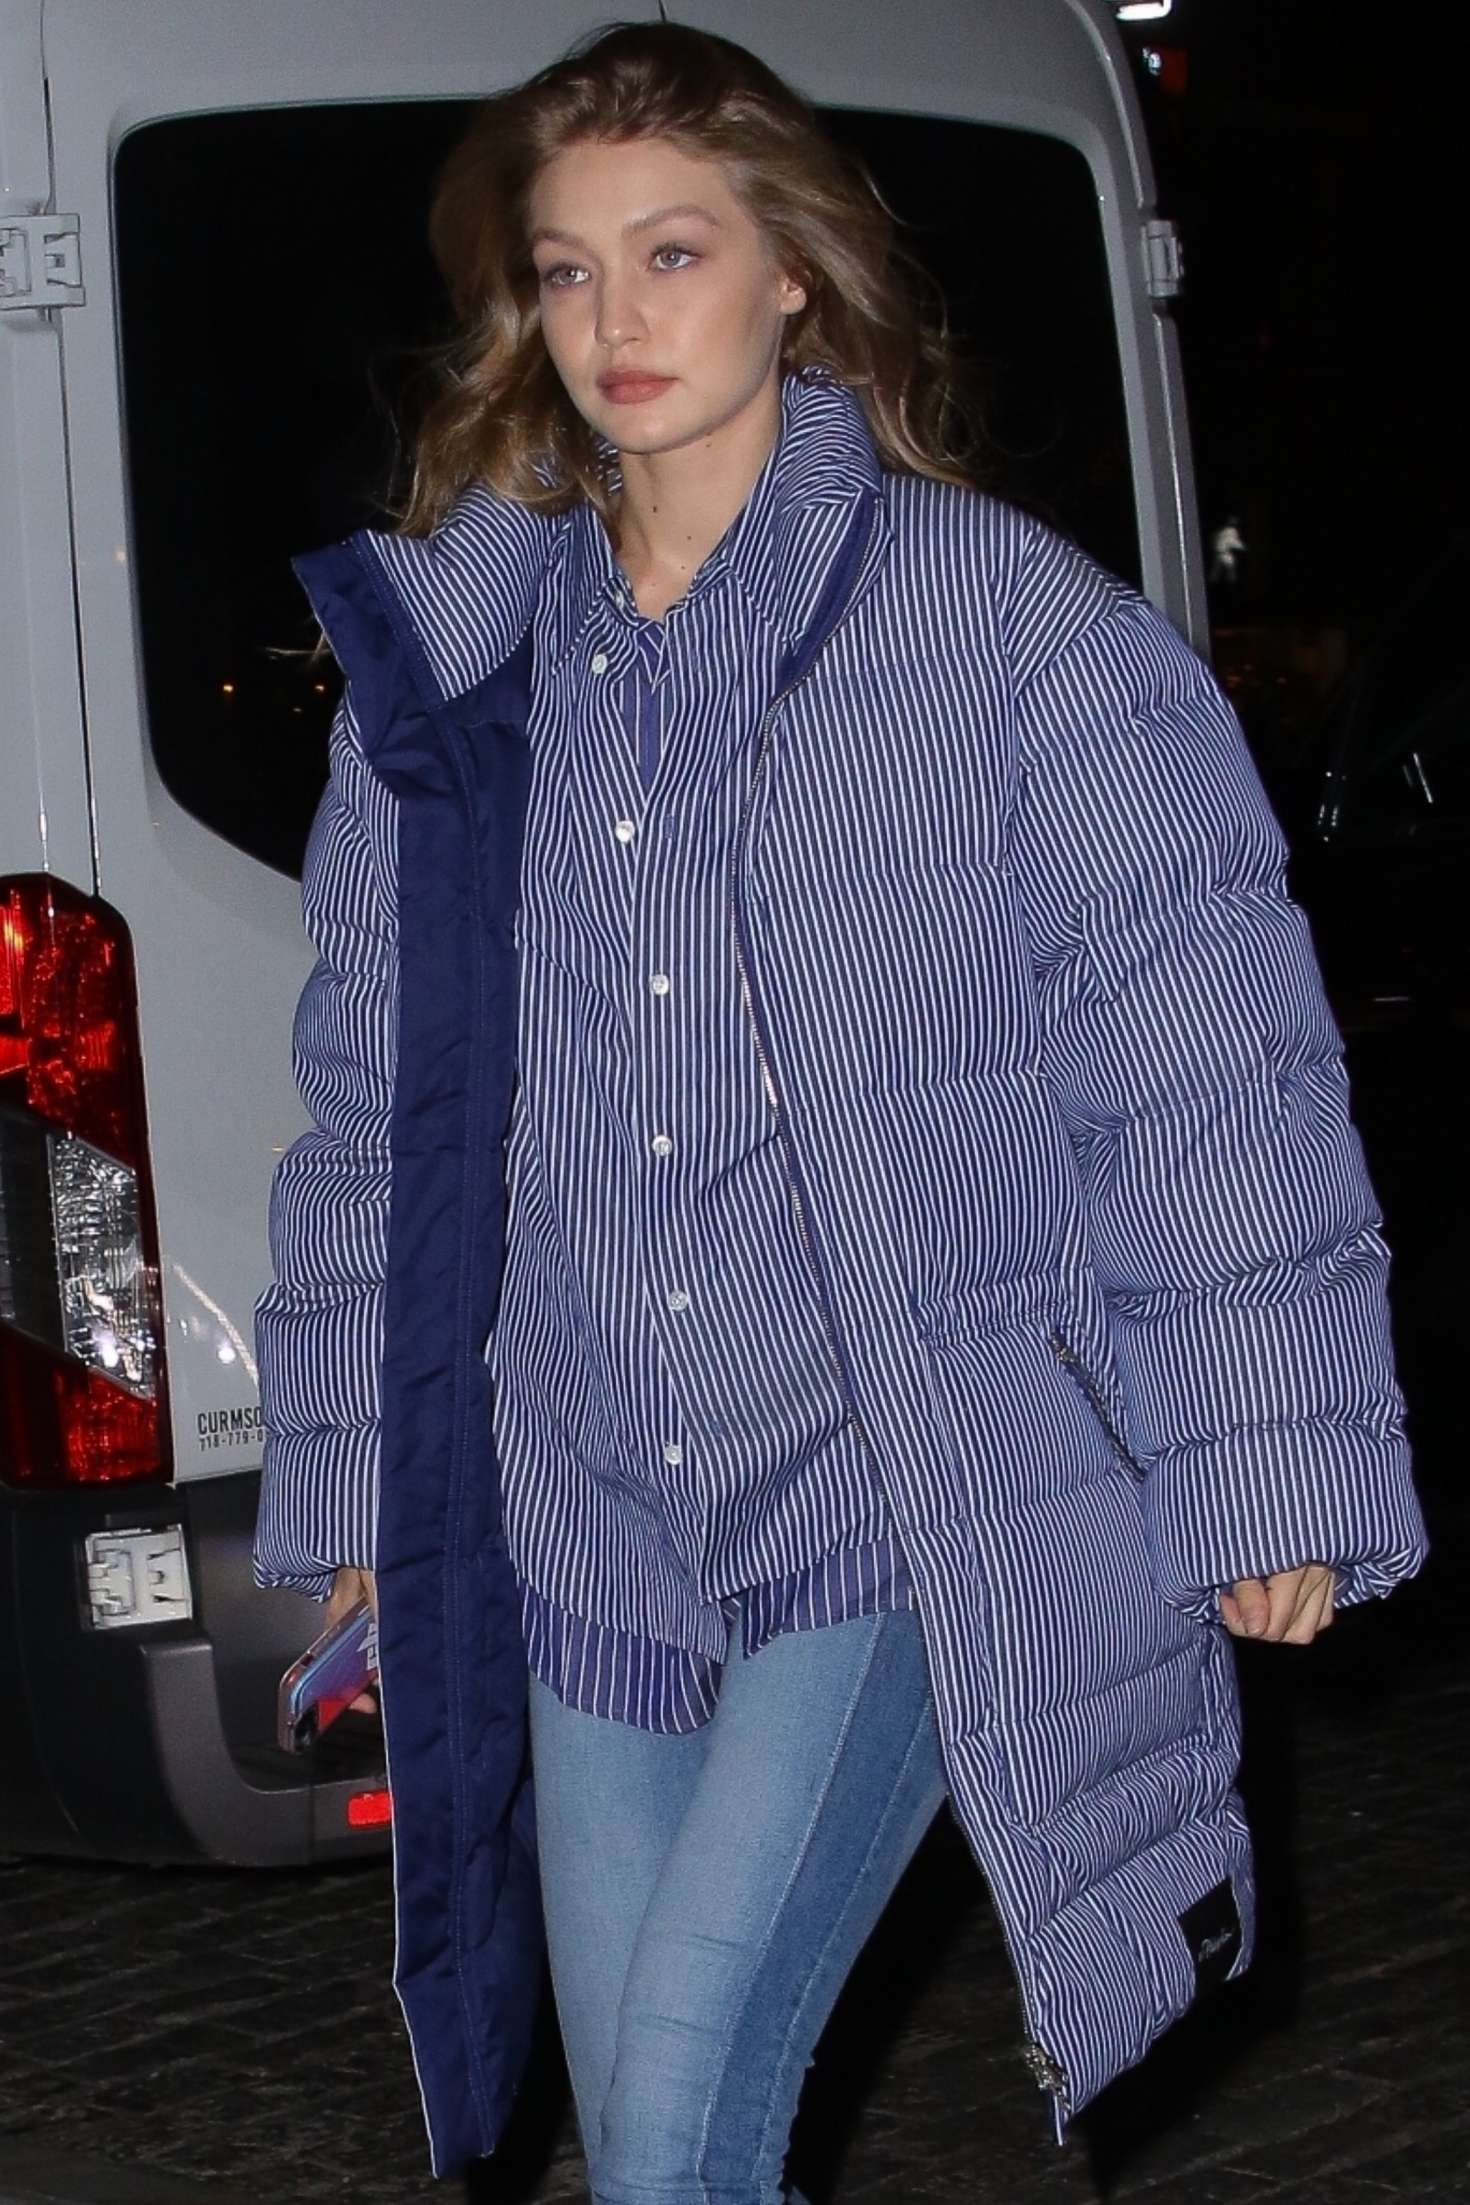 Gigi Hadid - Night out in New York City